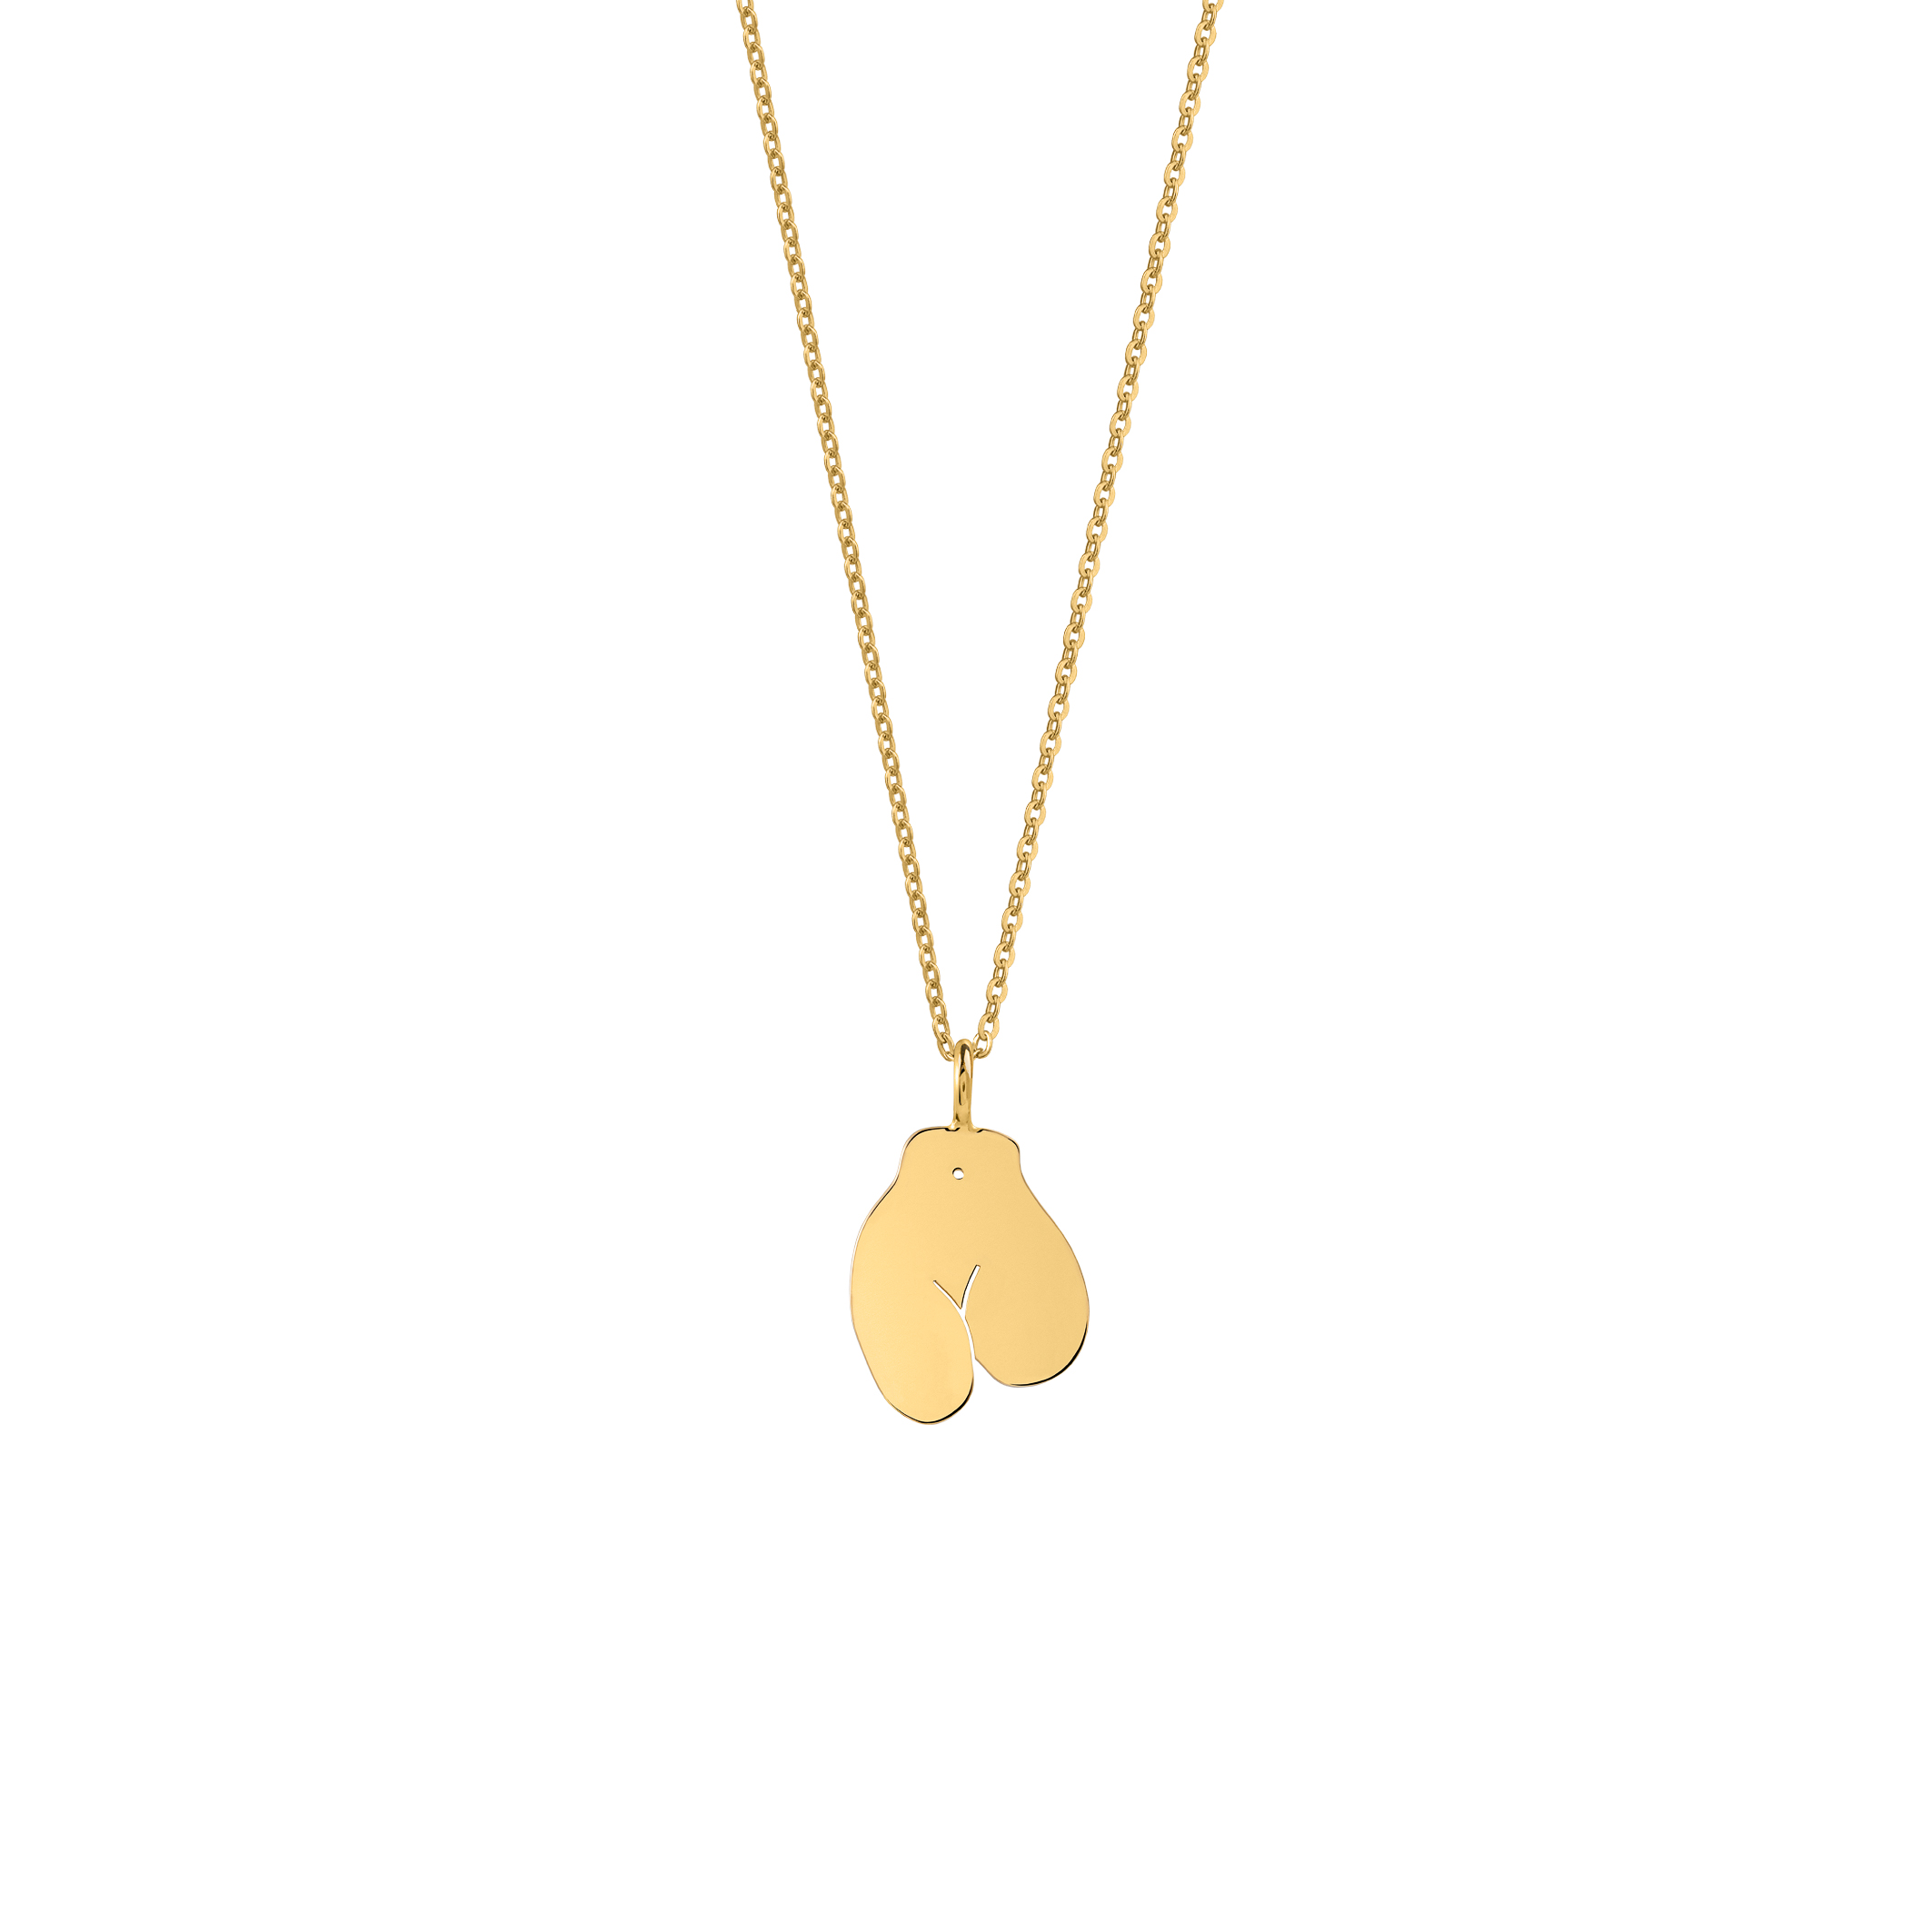 limited edition/ féminin 2 necklace gold